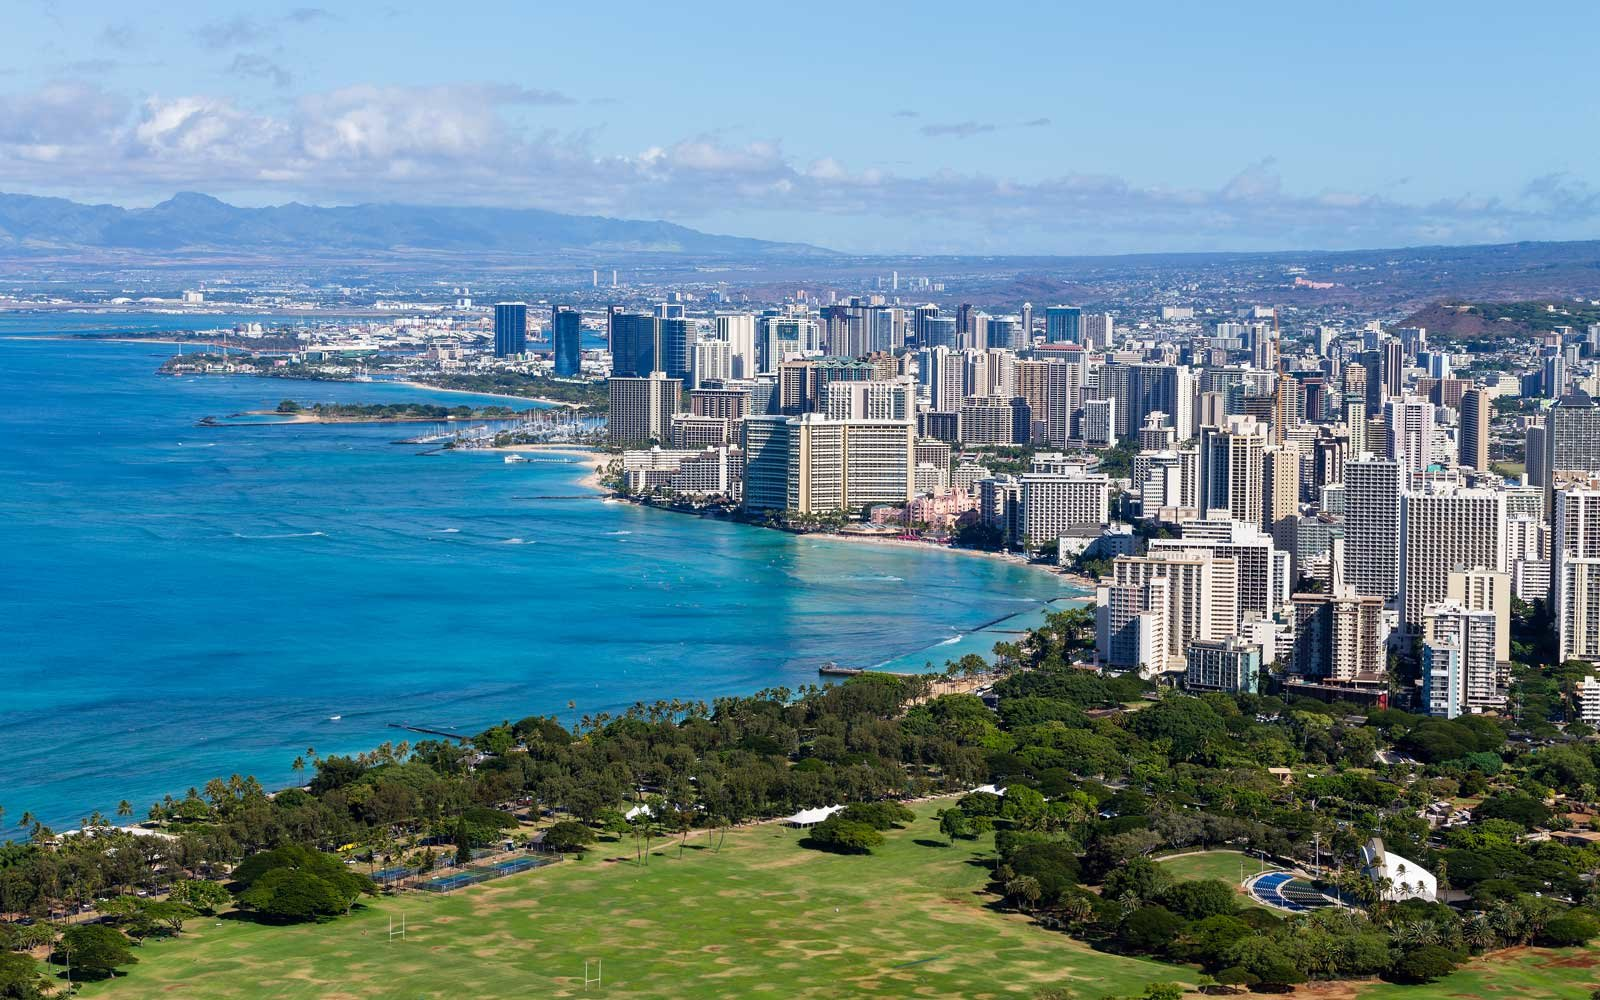 Elevated view of the Waikiki coastline